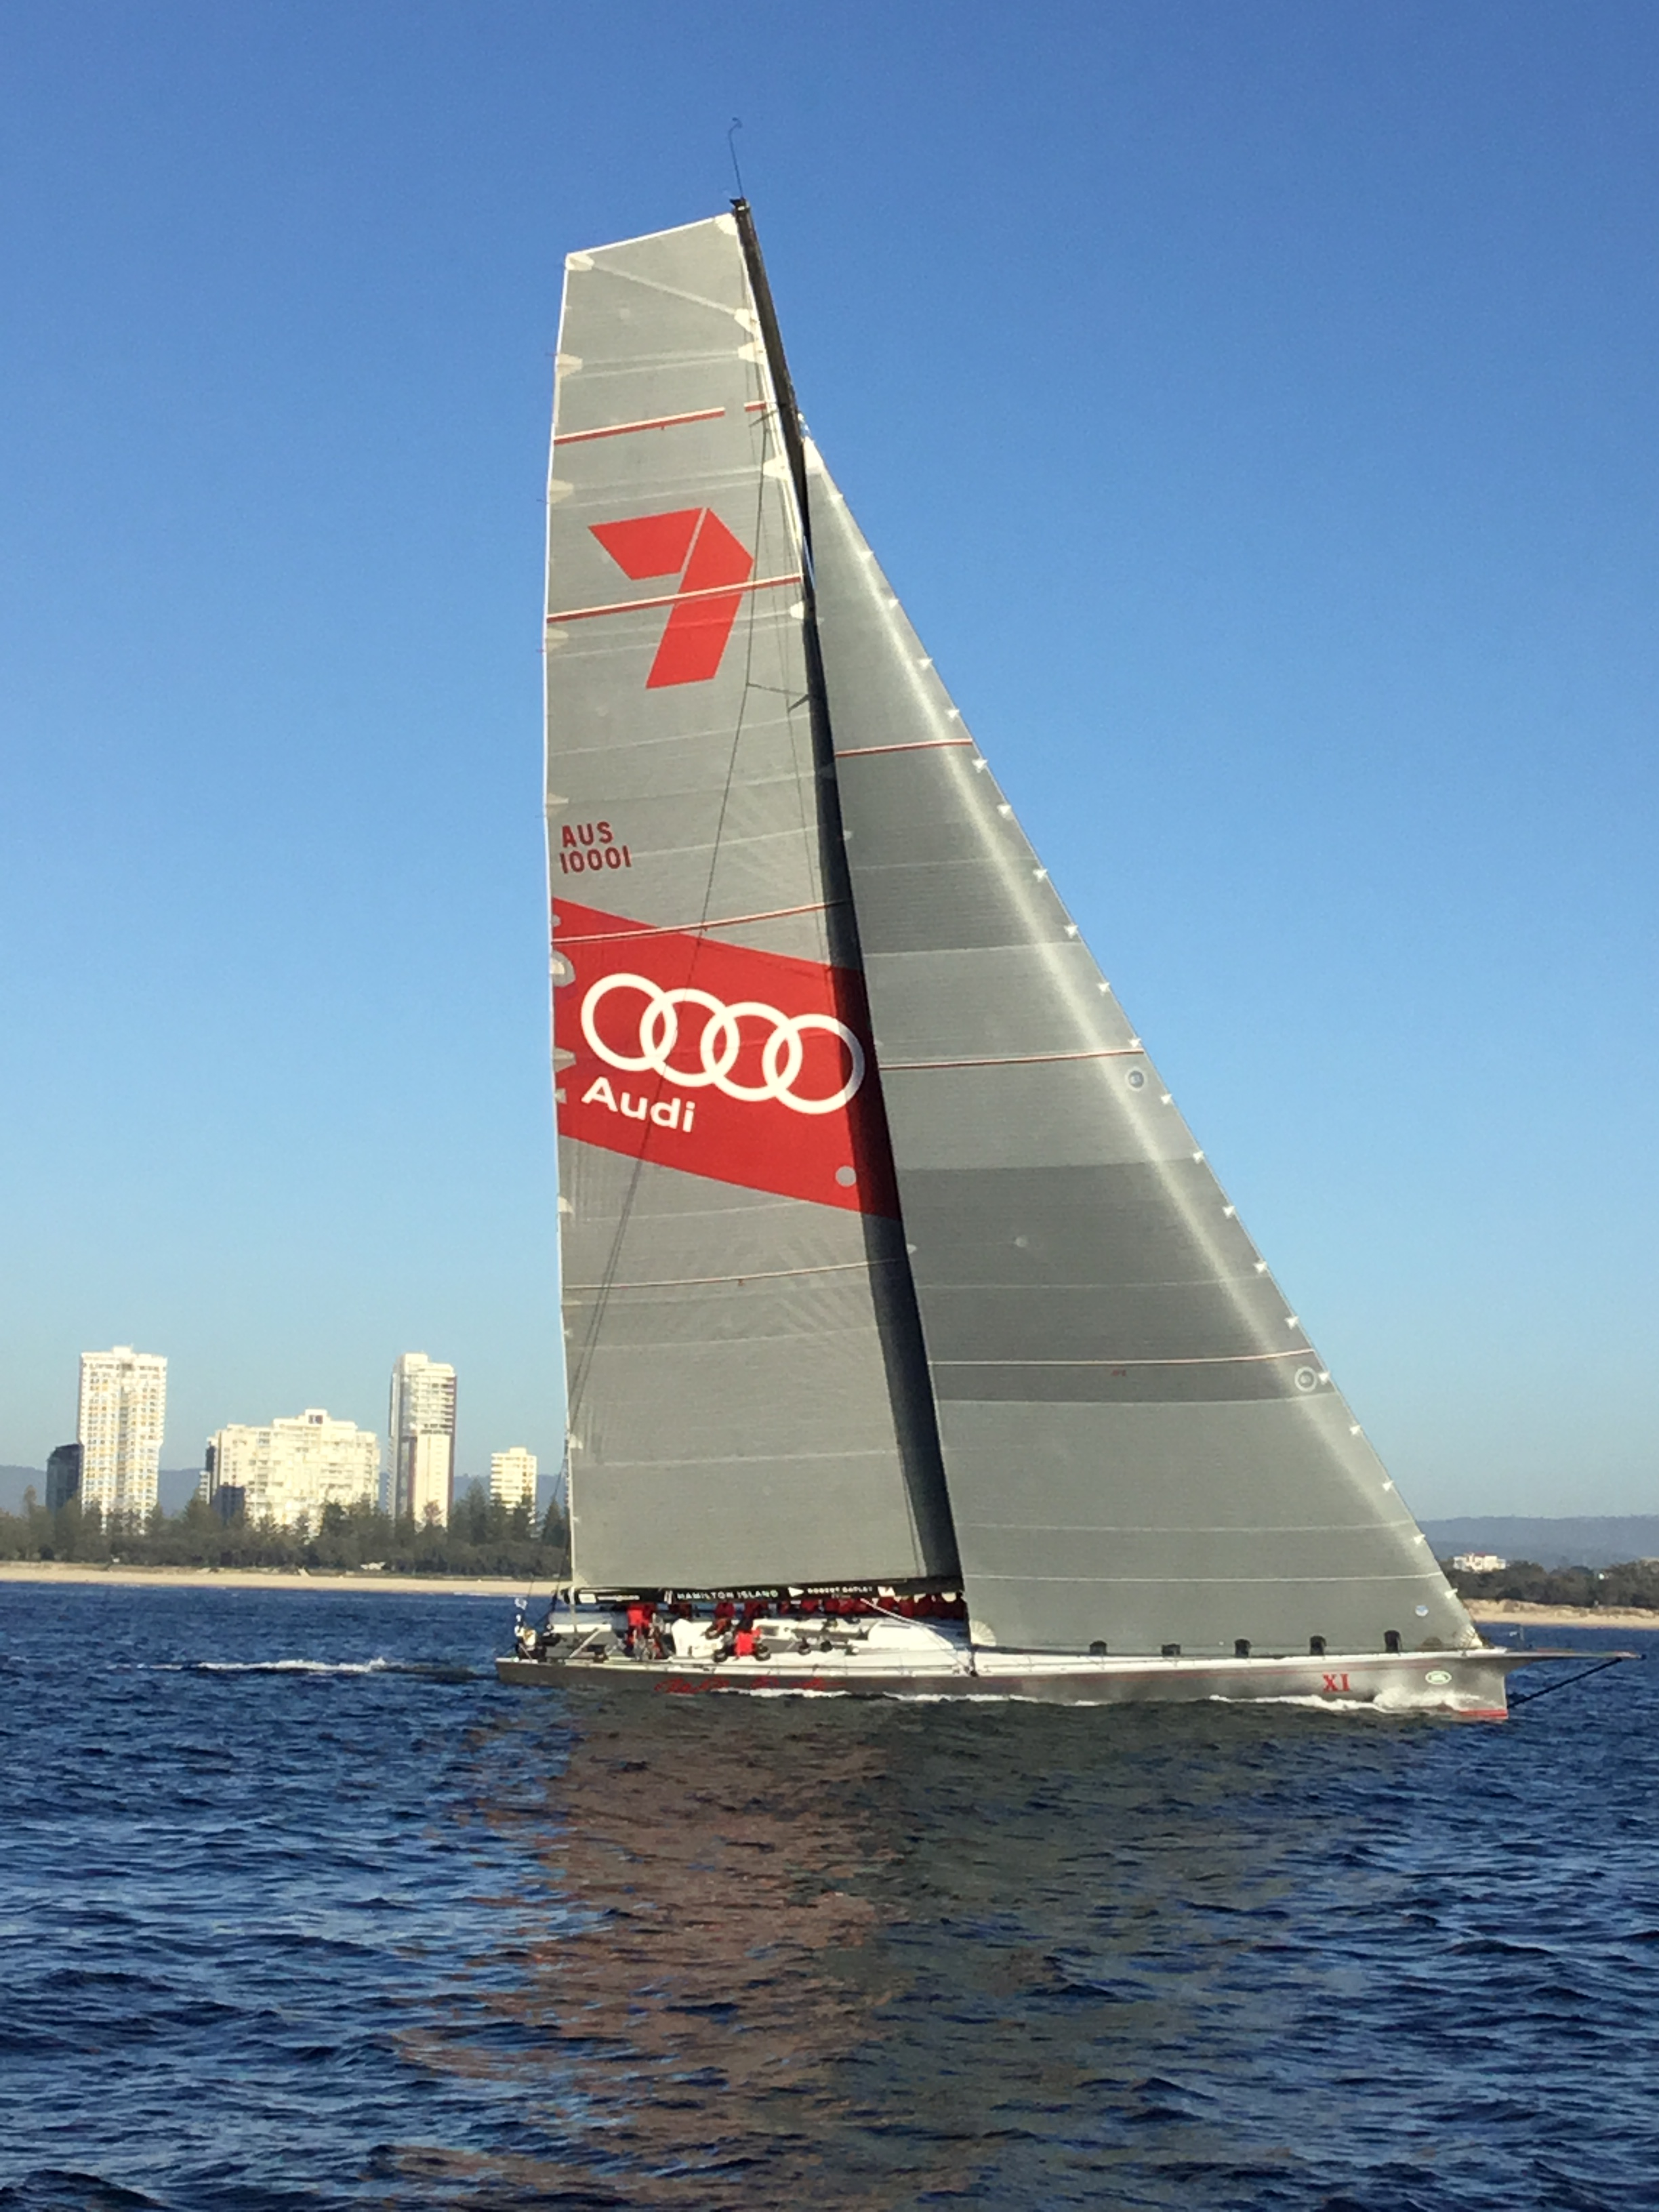 Supermaxi yacht Wild Oats XI  claims line honours in the  Land Rover Sydney Gold Coast race